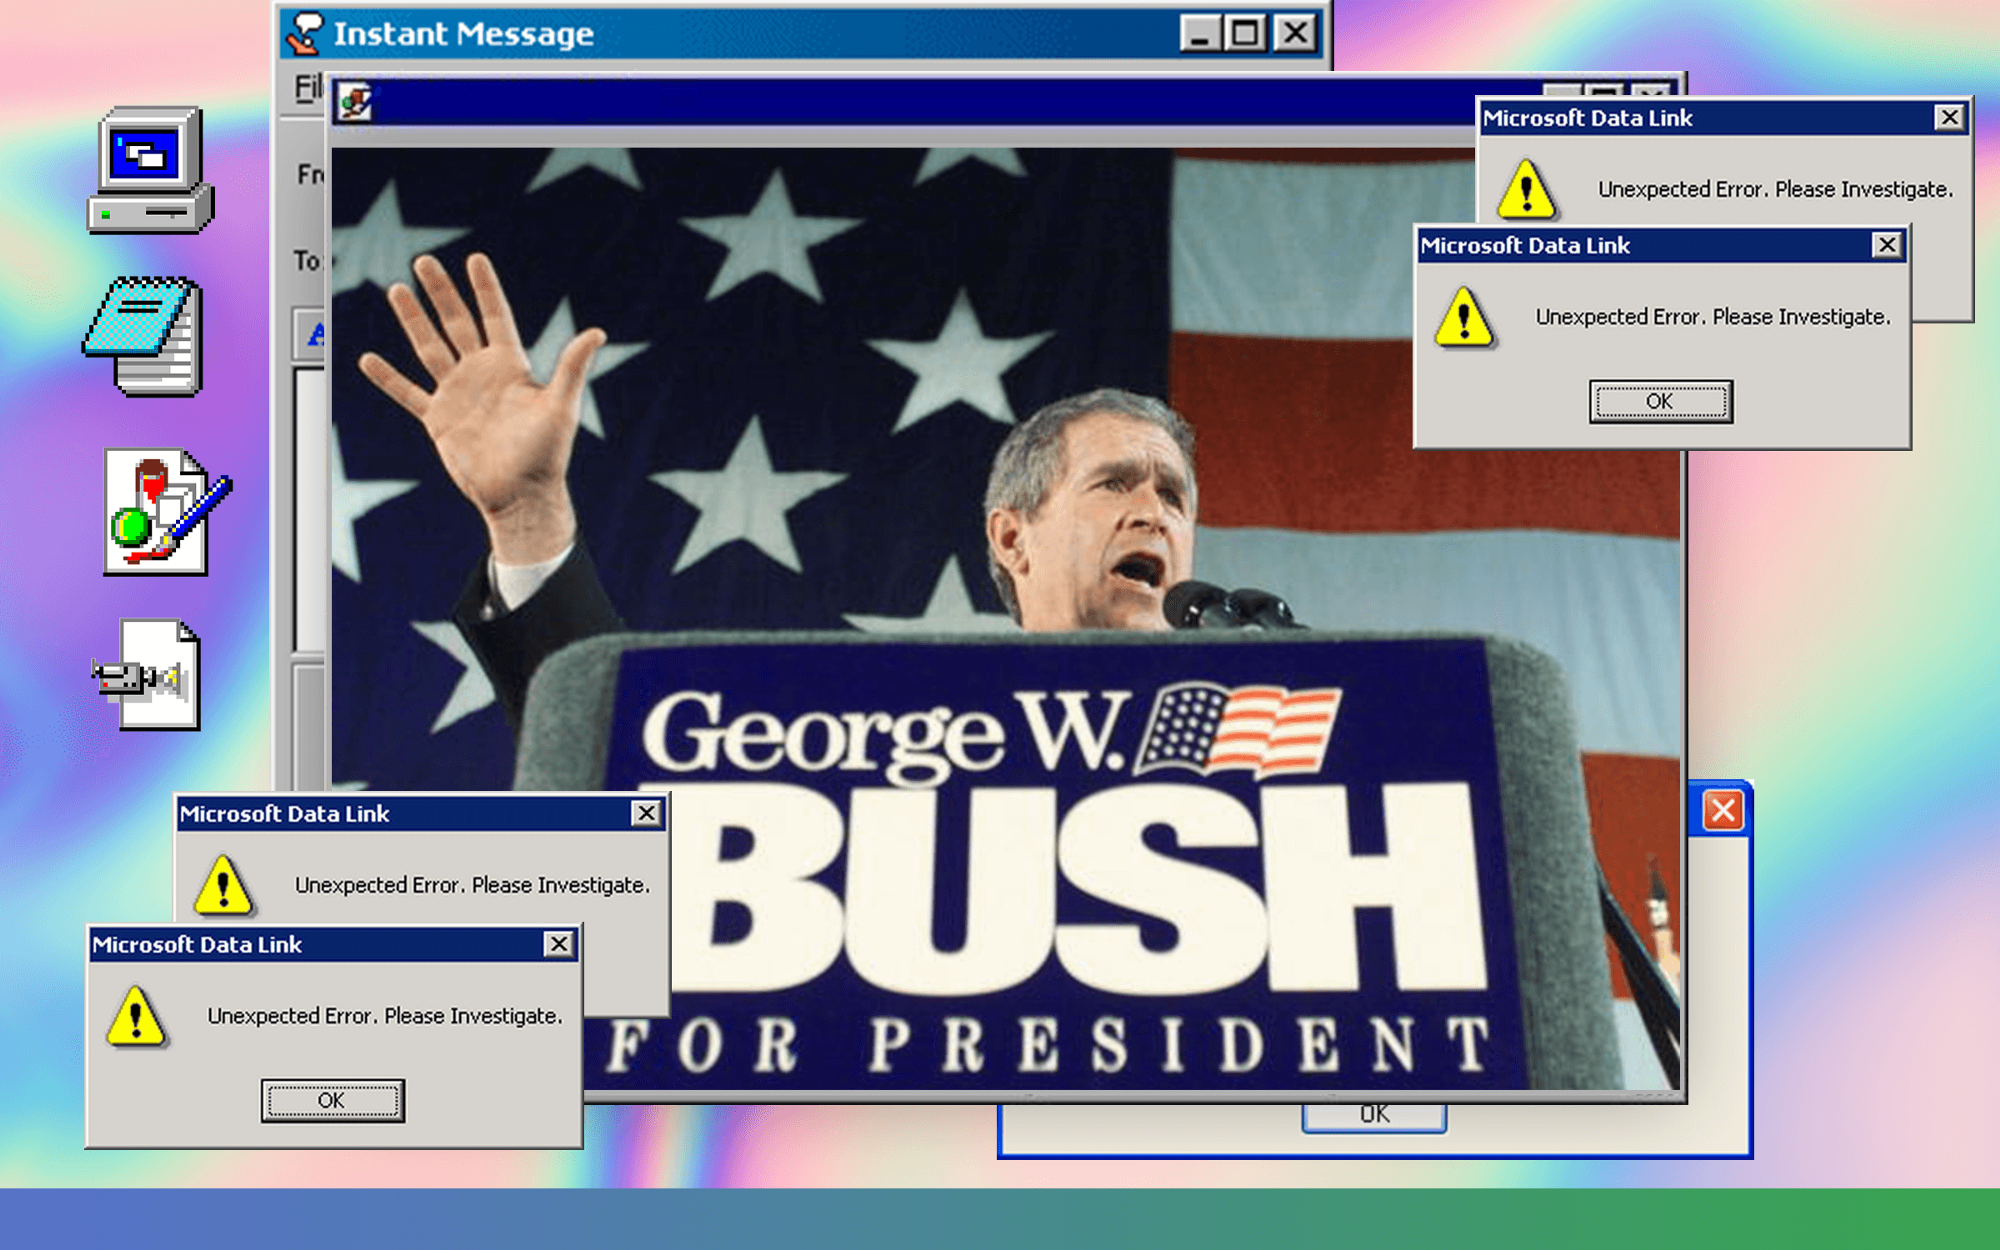 George Bush for President image with error messages on a Windows 95 desktop.